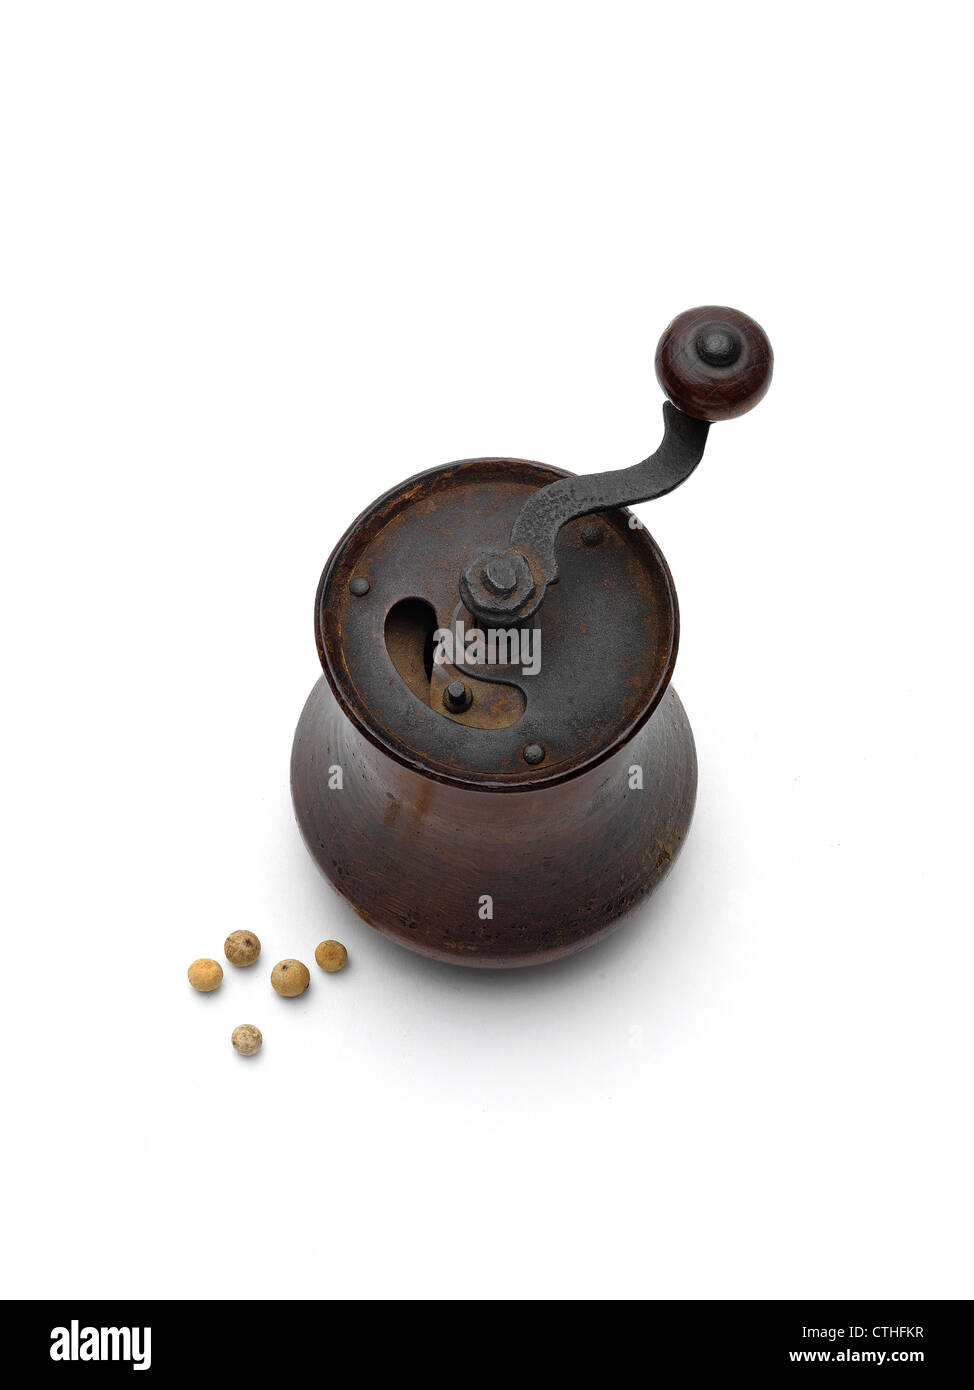 pepper mills - Stock Image